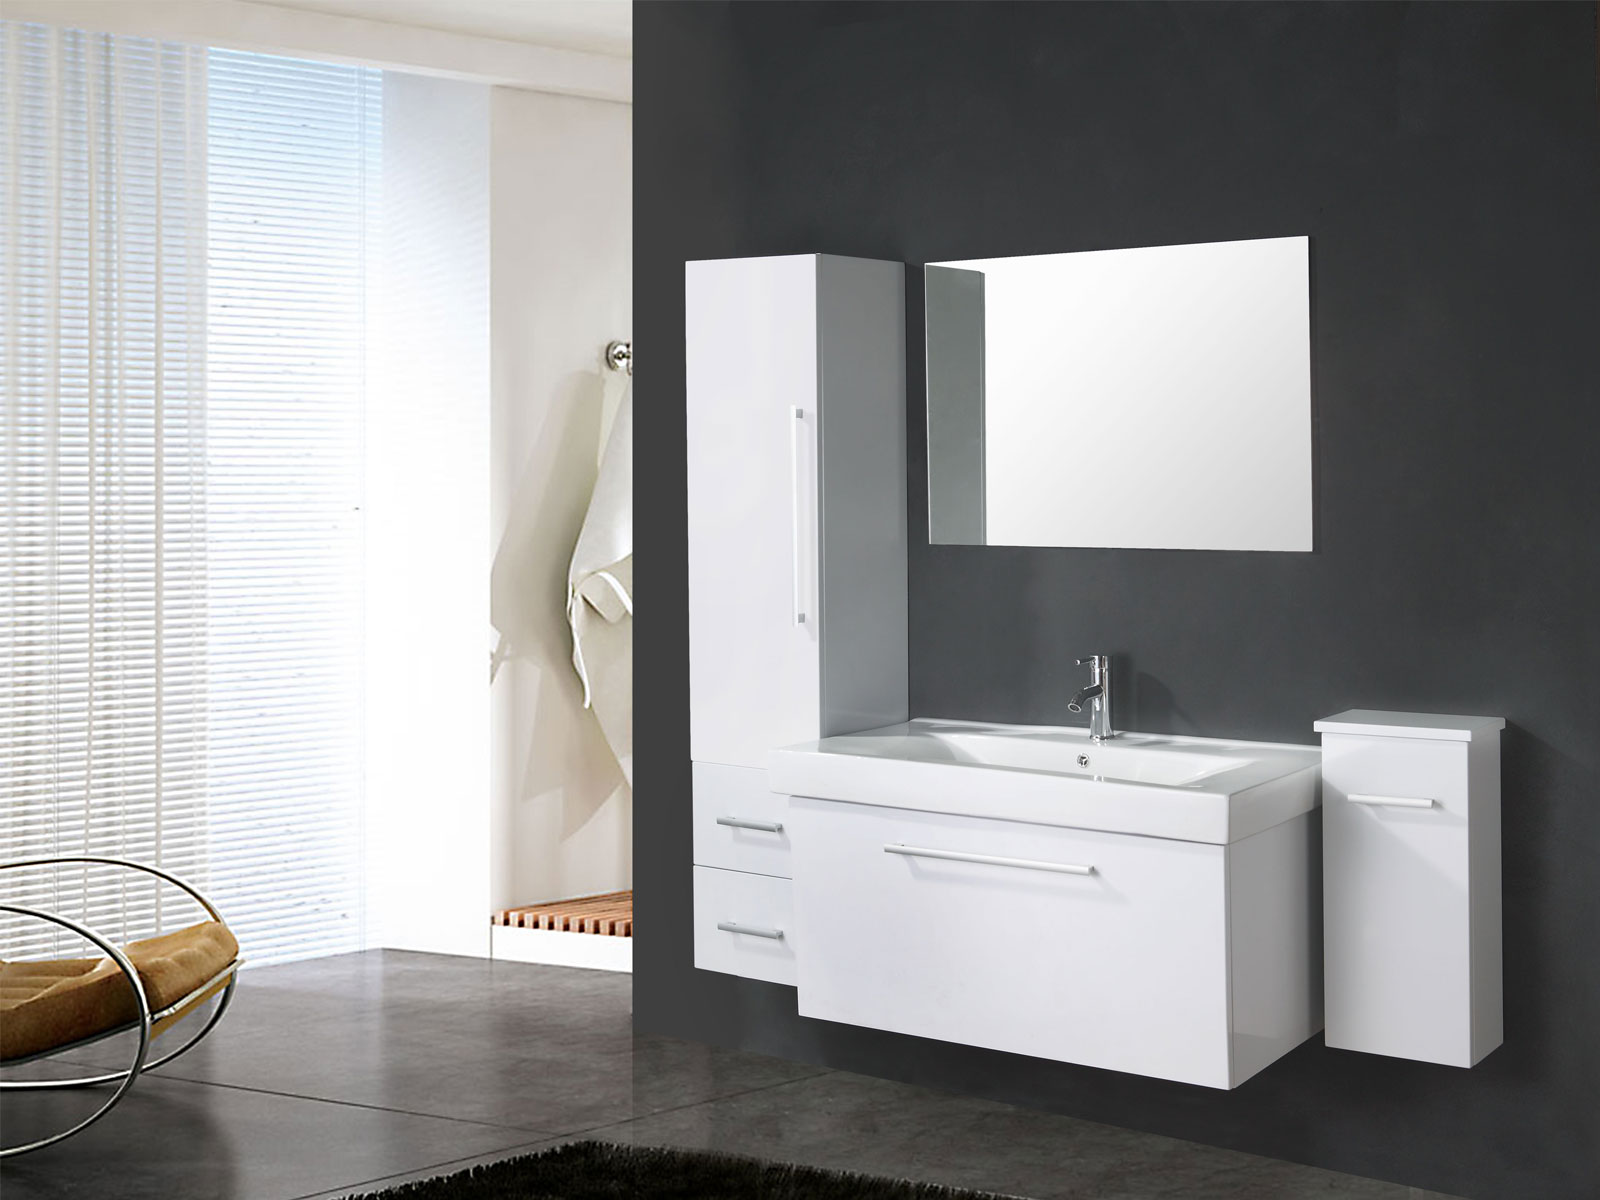 mobile bagno arredo bagno 100 cm lavabo e colonne incluse white london. Black Bedroom Furniture Sets. Home Design Ideas